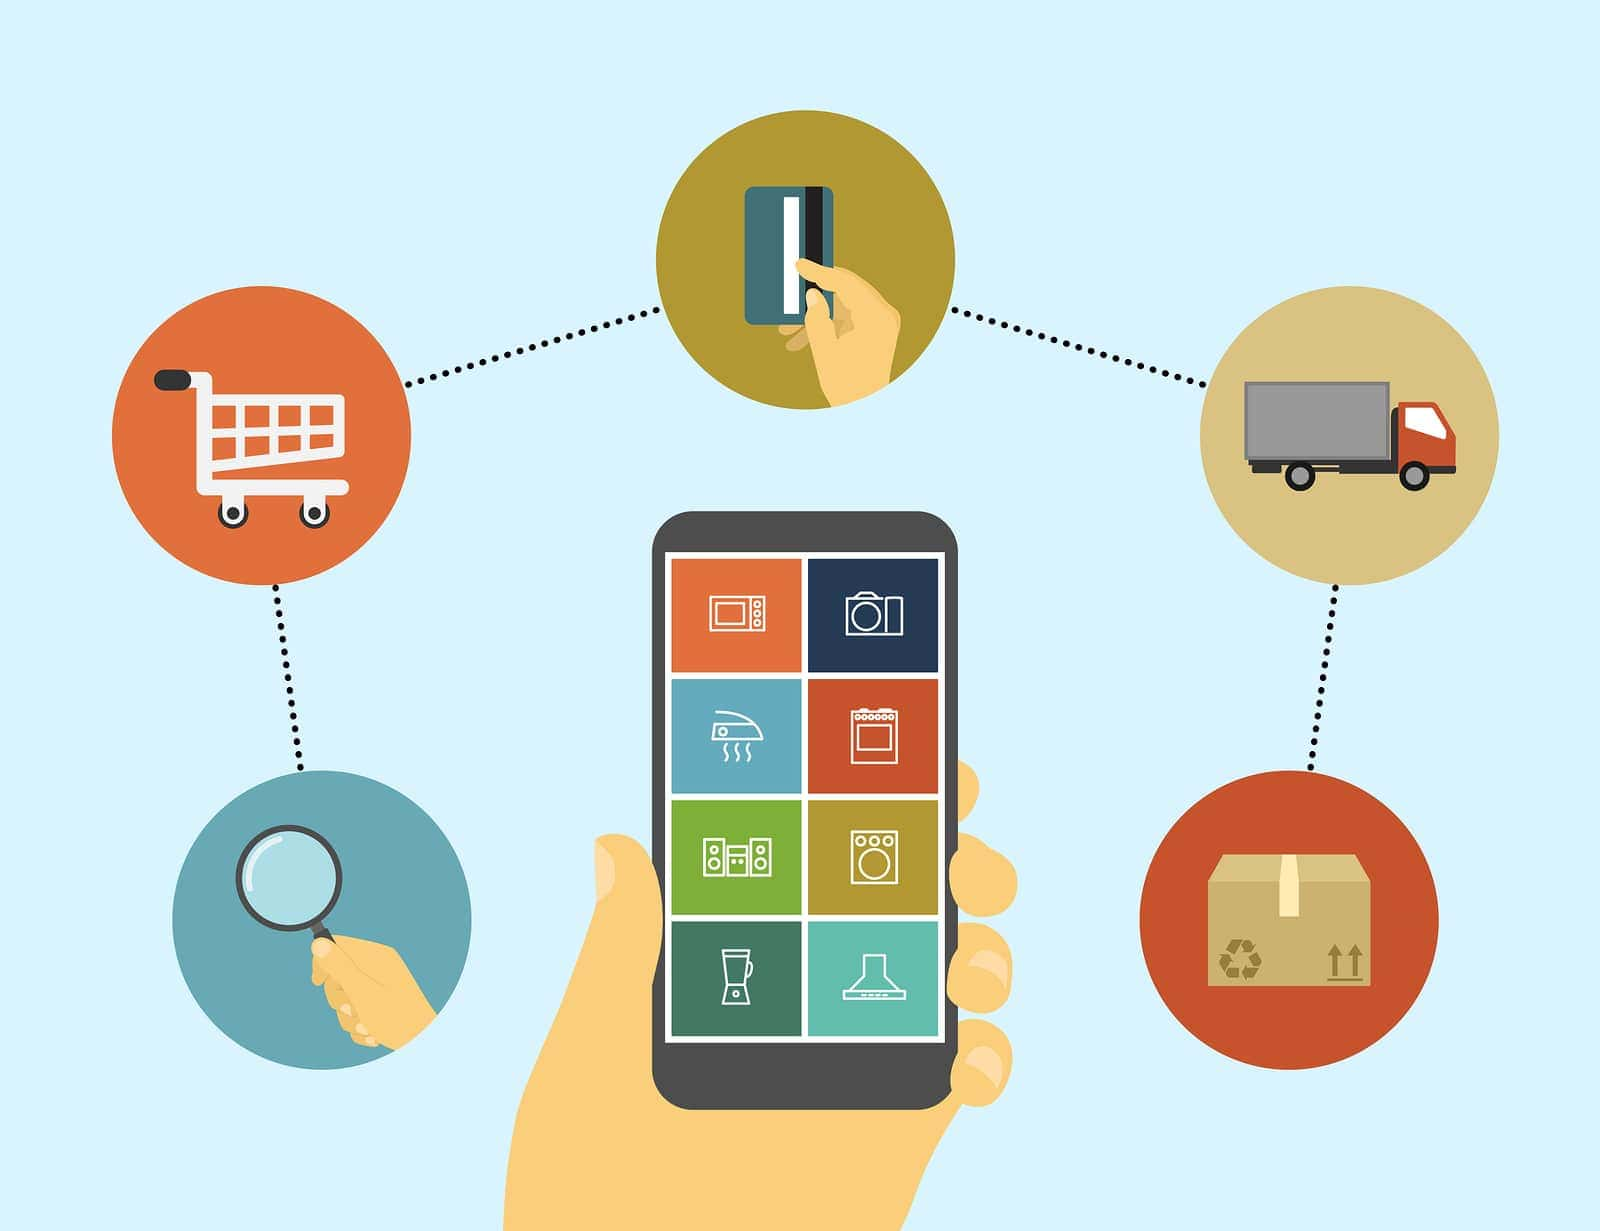 Retain and engage customers with mobile app